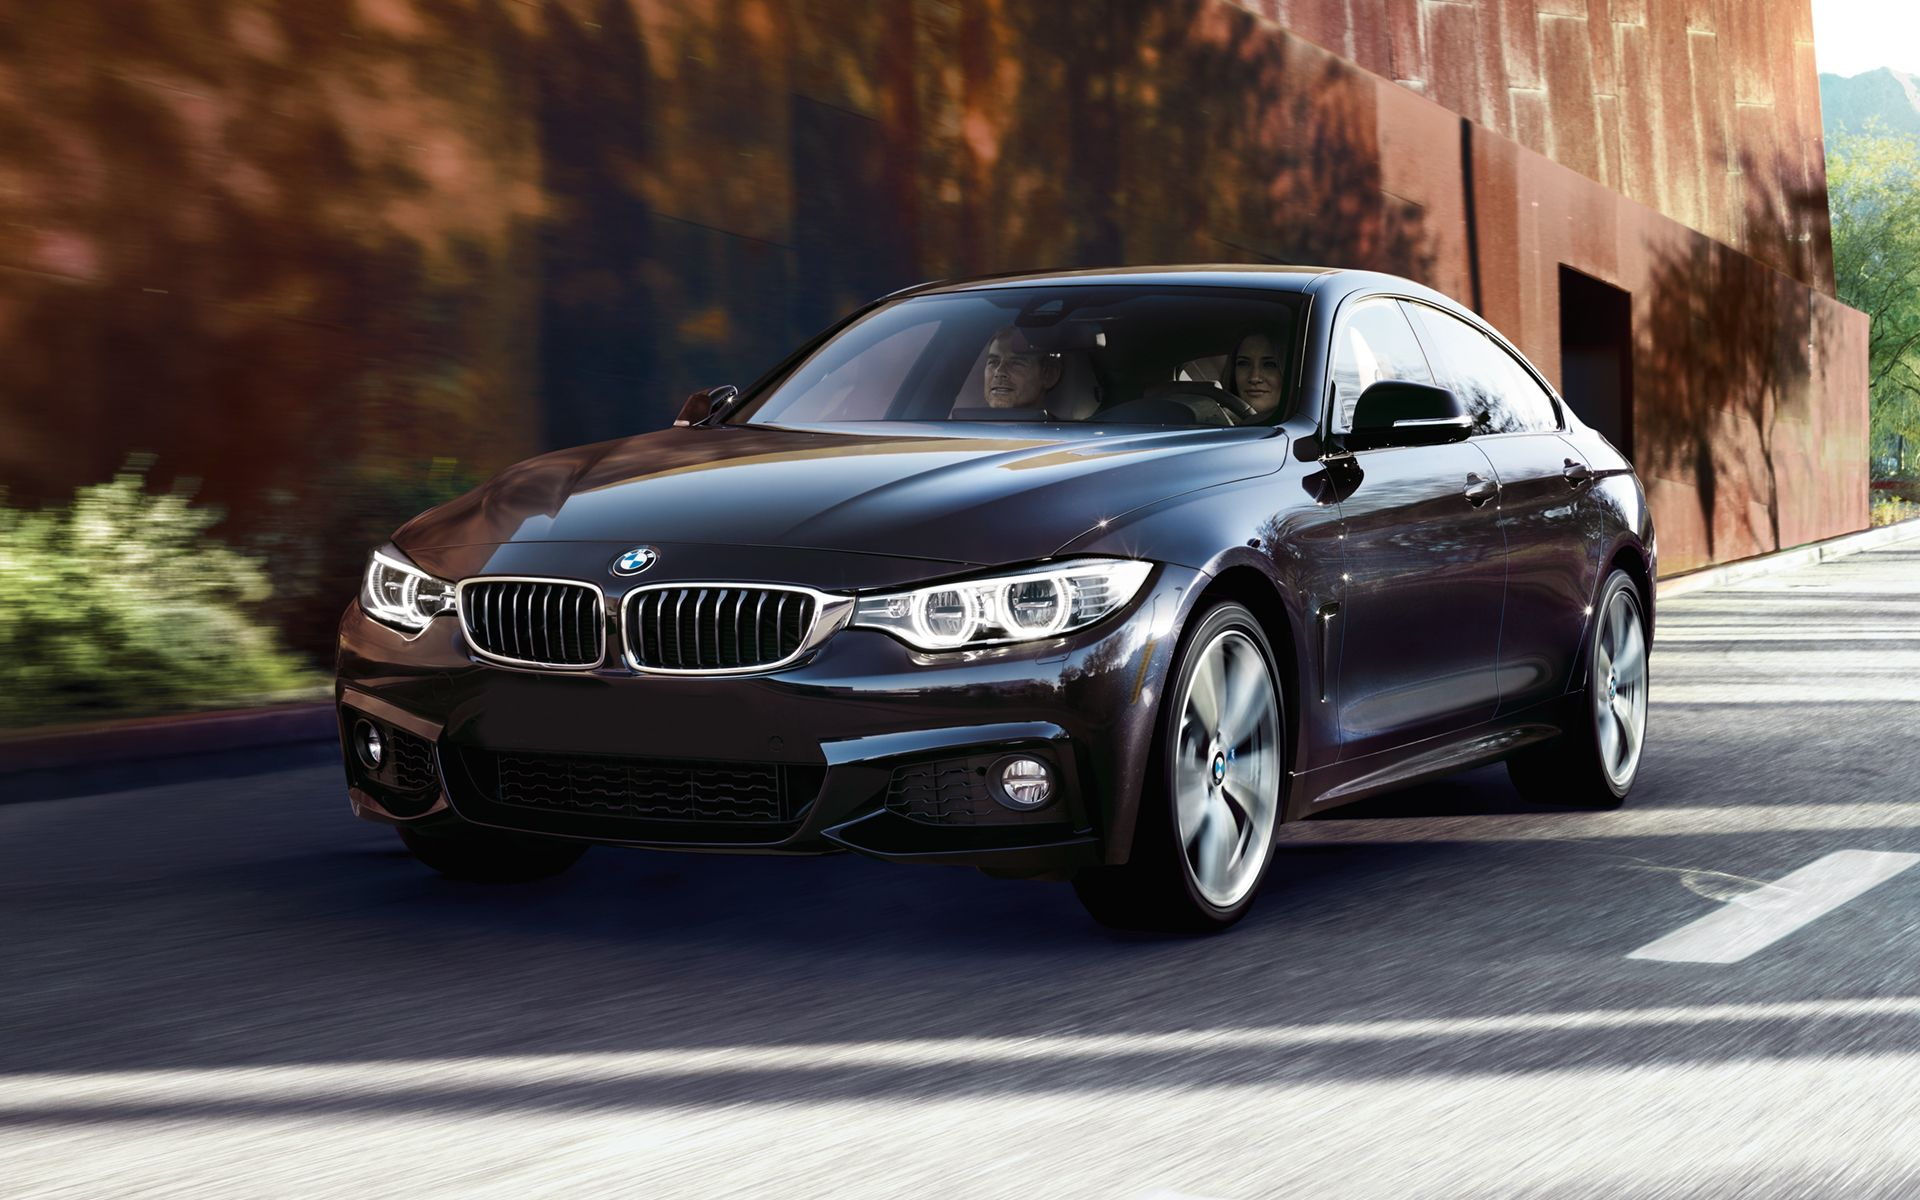 Bmw 4 Series Gran Coupe In Carbon Black Metallic Bmw 4 Series